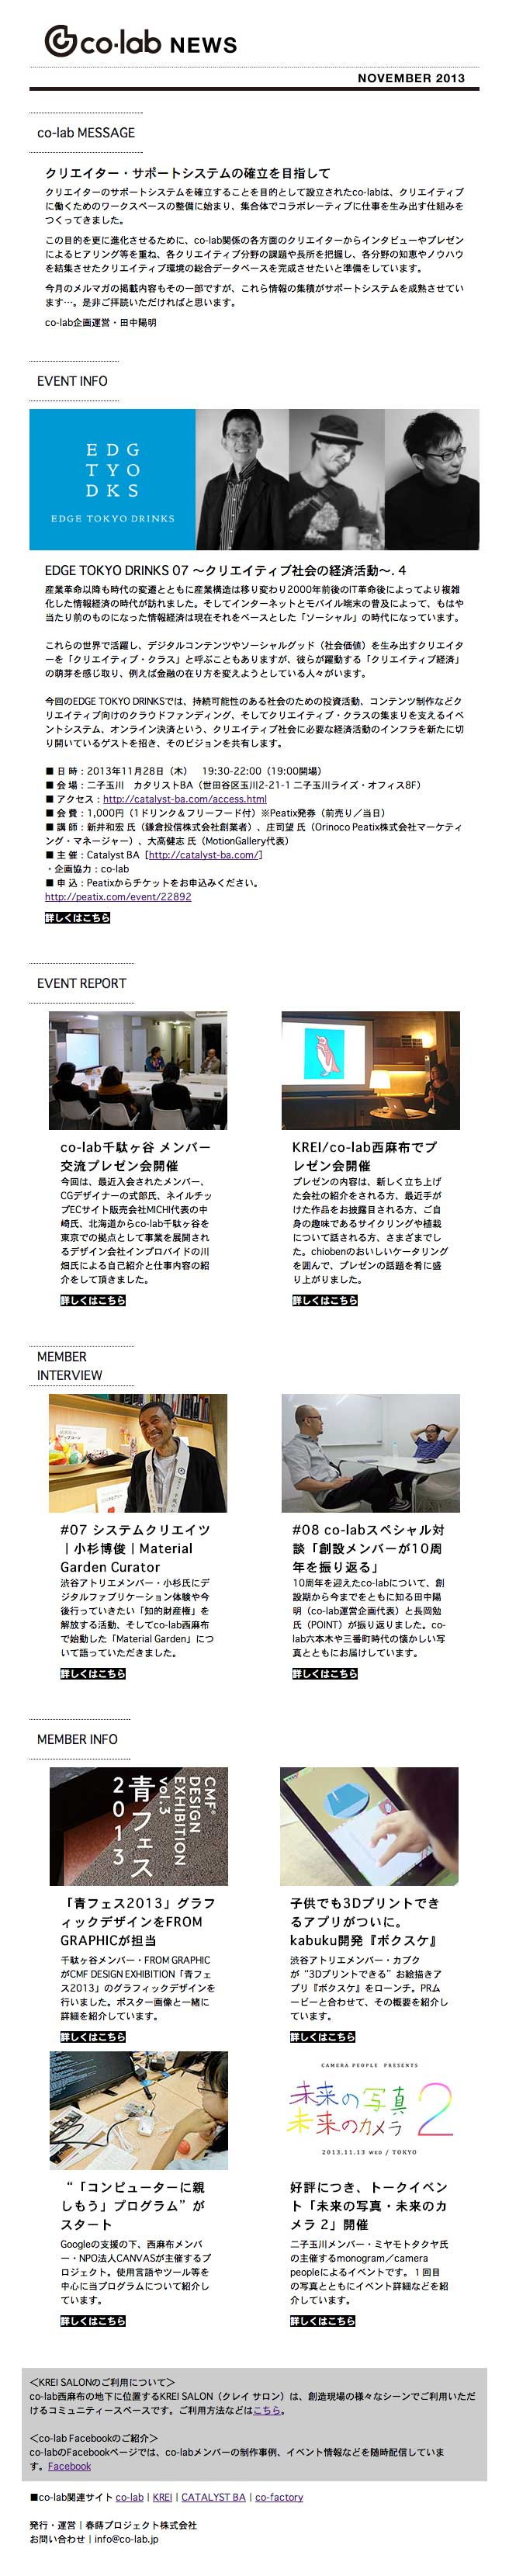 画像:co-lab NEWS 2013.11月号